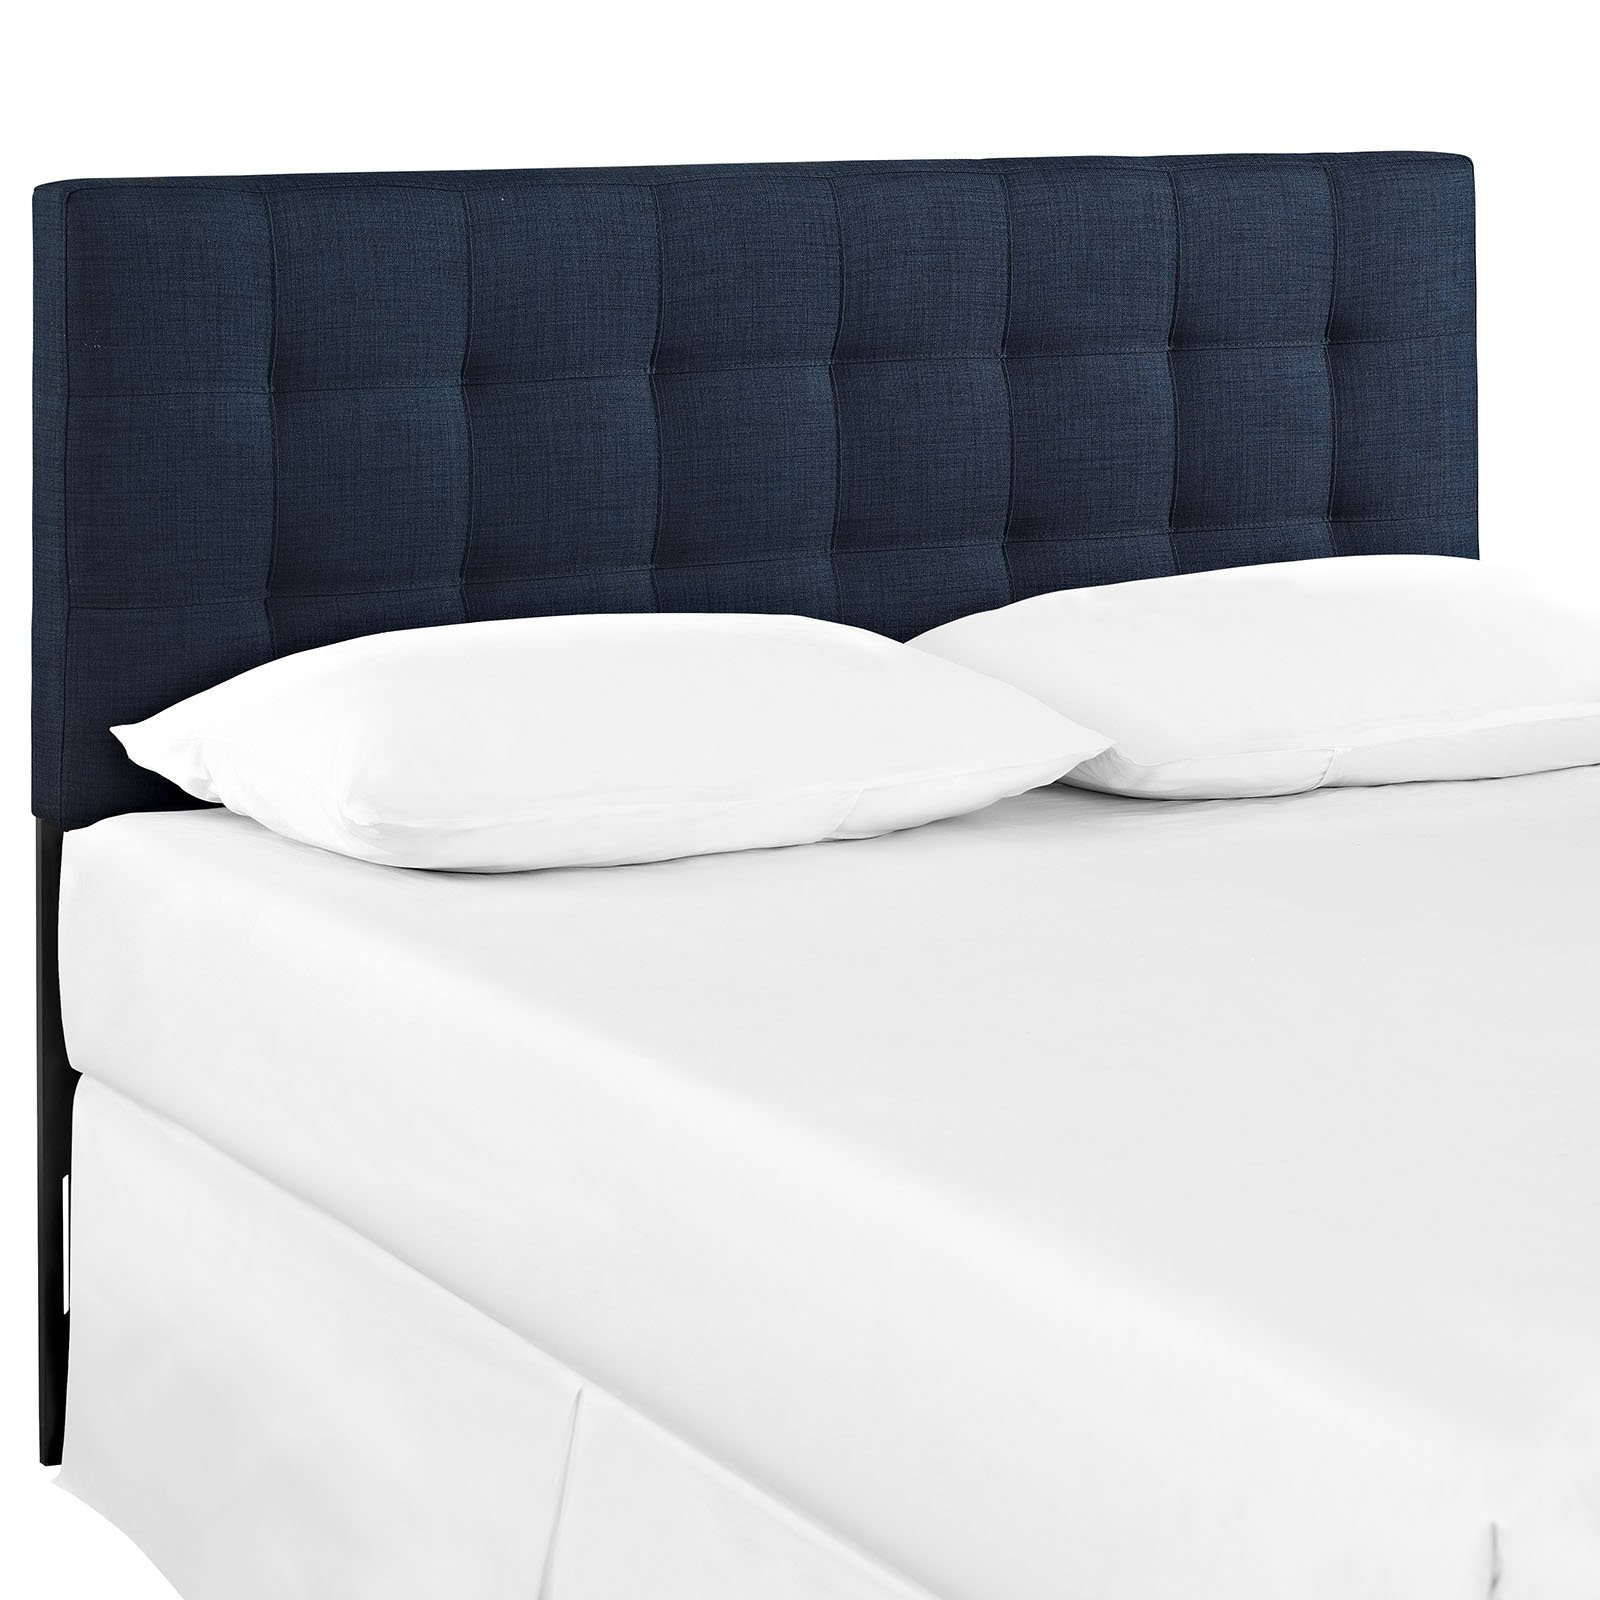 Modway Lily Upholstered Tufted Fabric Headboard Queen Size In Navy